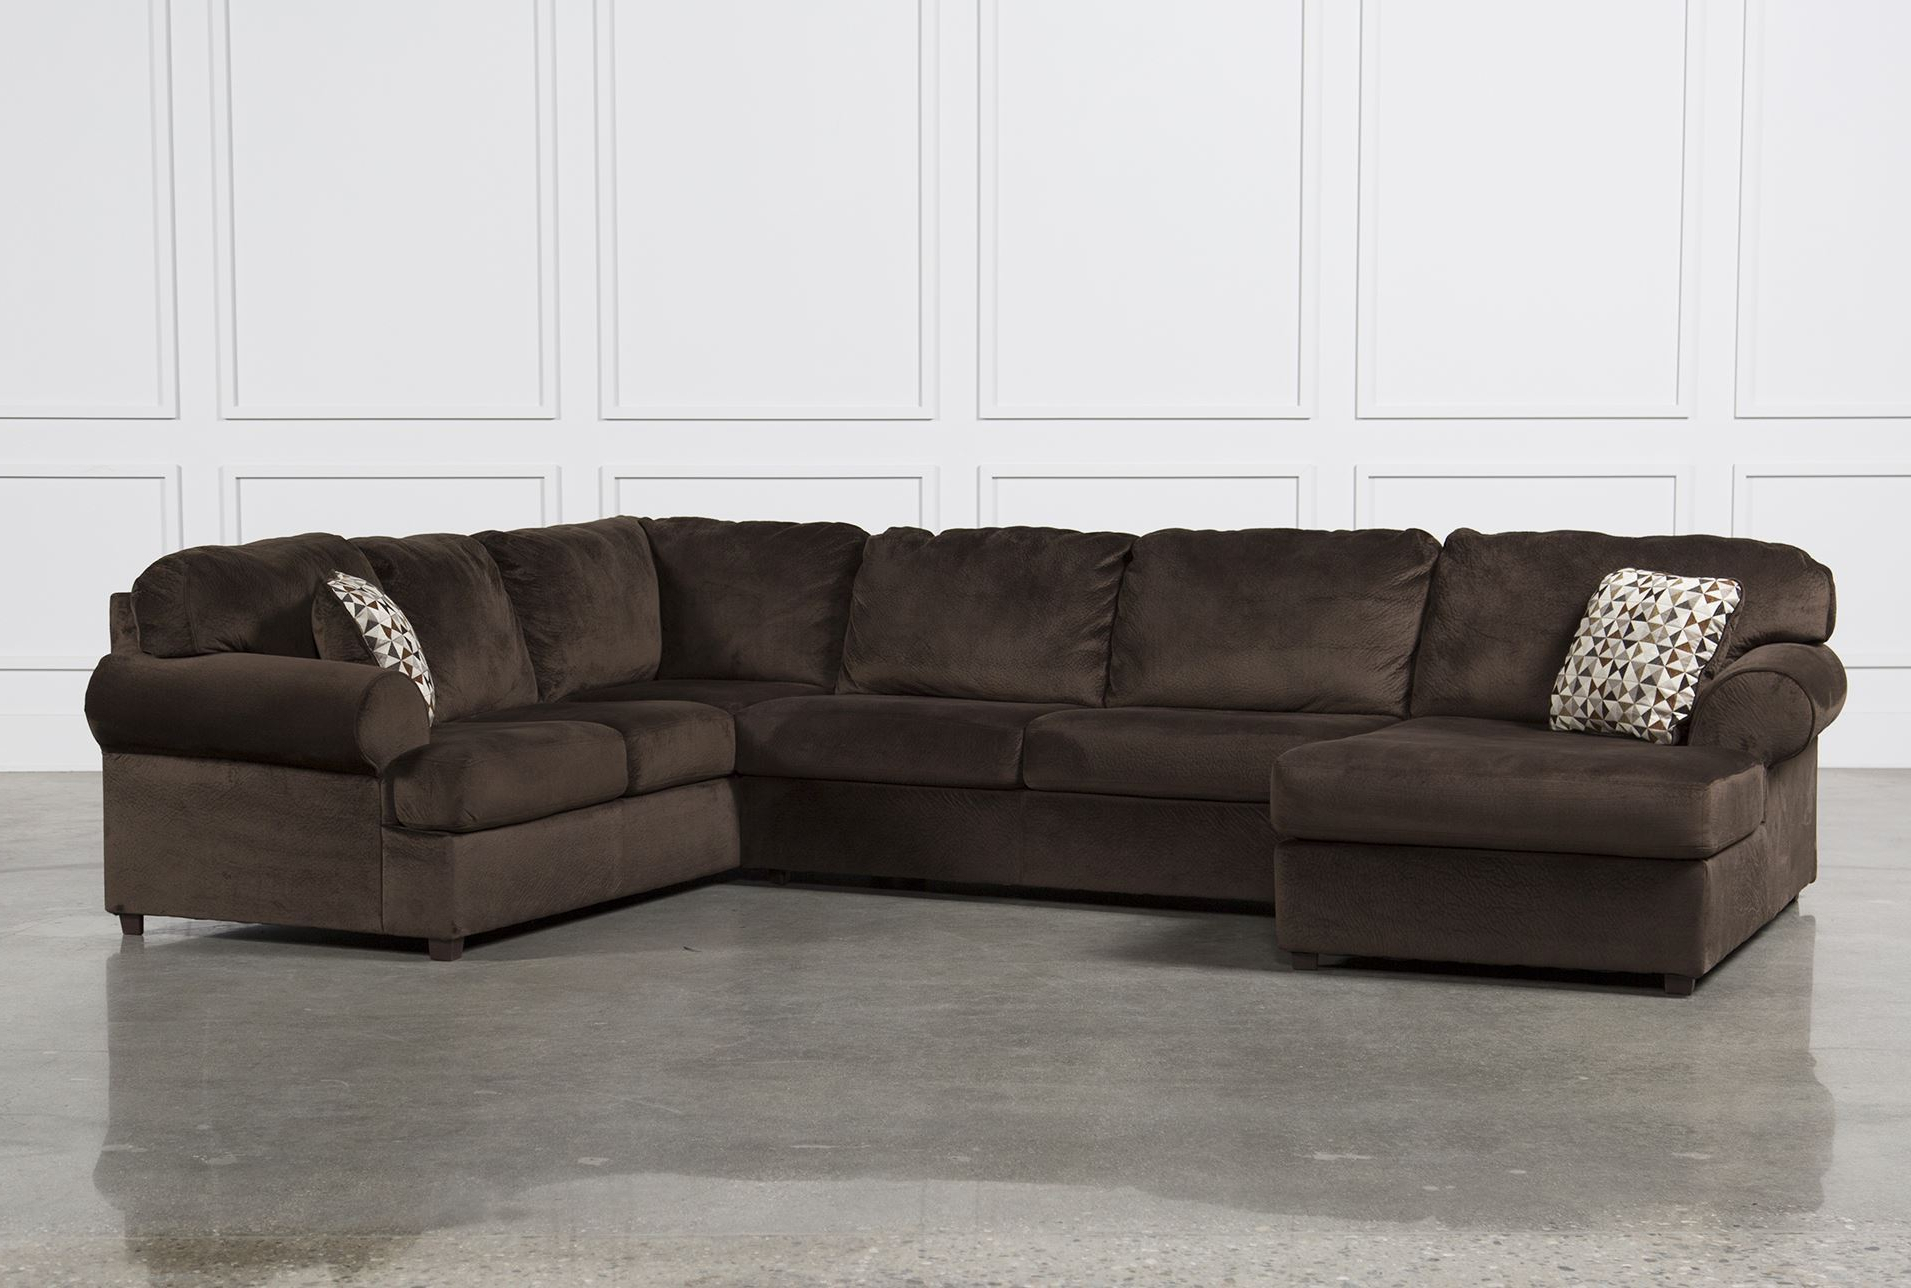 Sectional Sofas Leather And Couches Ideas With Living Spaces Couch Inside 2019 Norfolk Grey 3 Piece Sectionals With Laf Chaise (View 18 of 20)